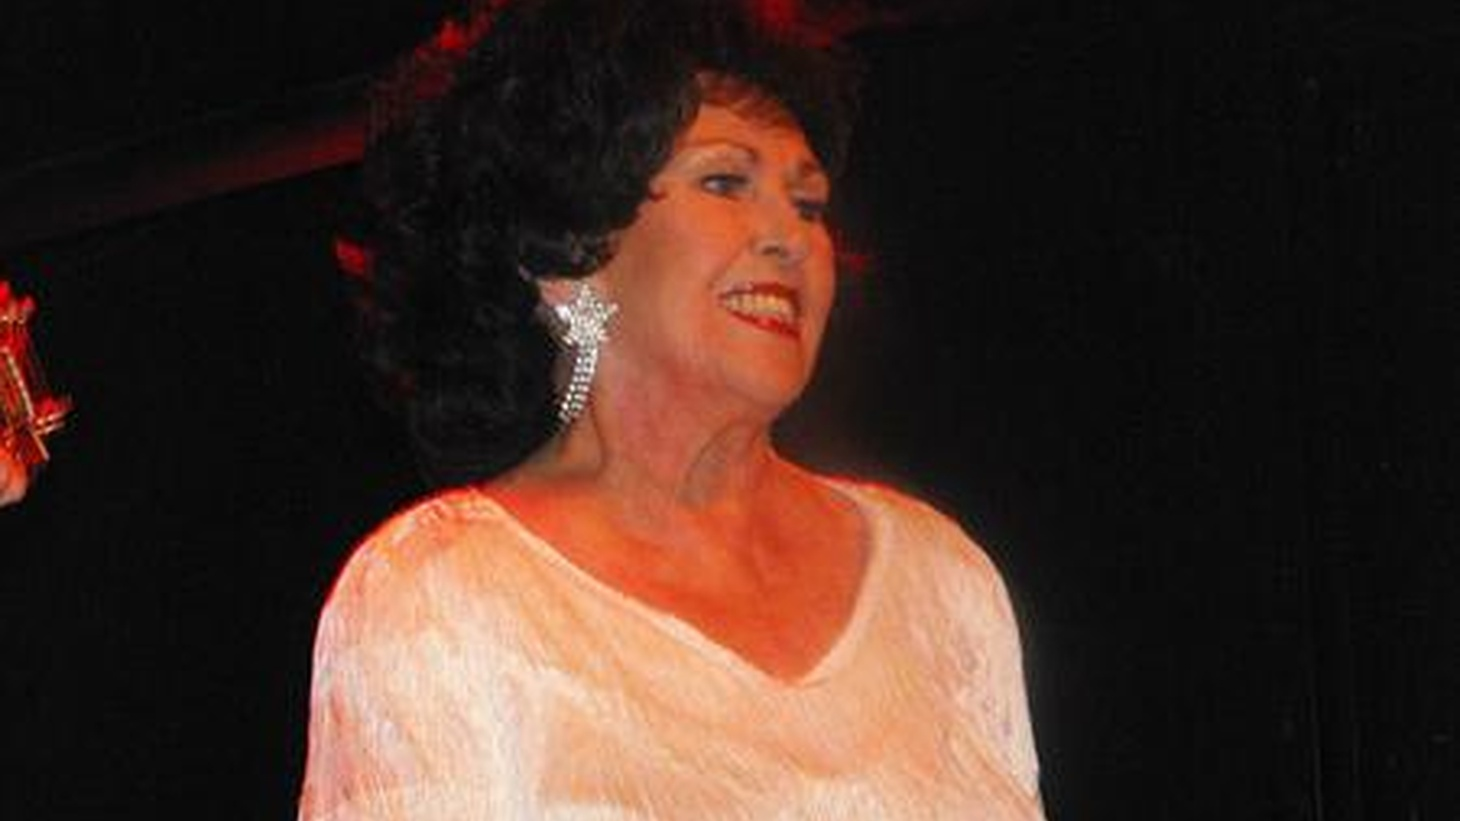 Hall of Fame inductee Wanda Jackson is at the heart of rock n roll and rockabilly and is going strong at 75 with over 30 albums under her belt.